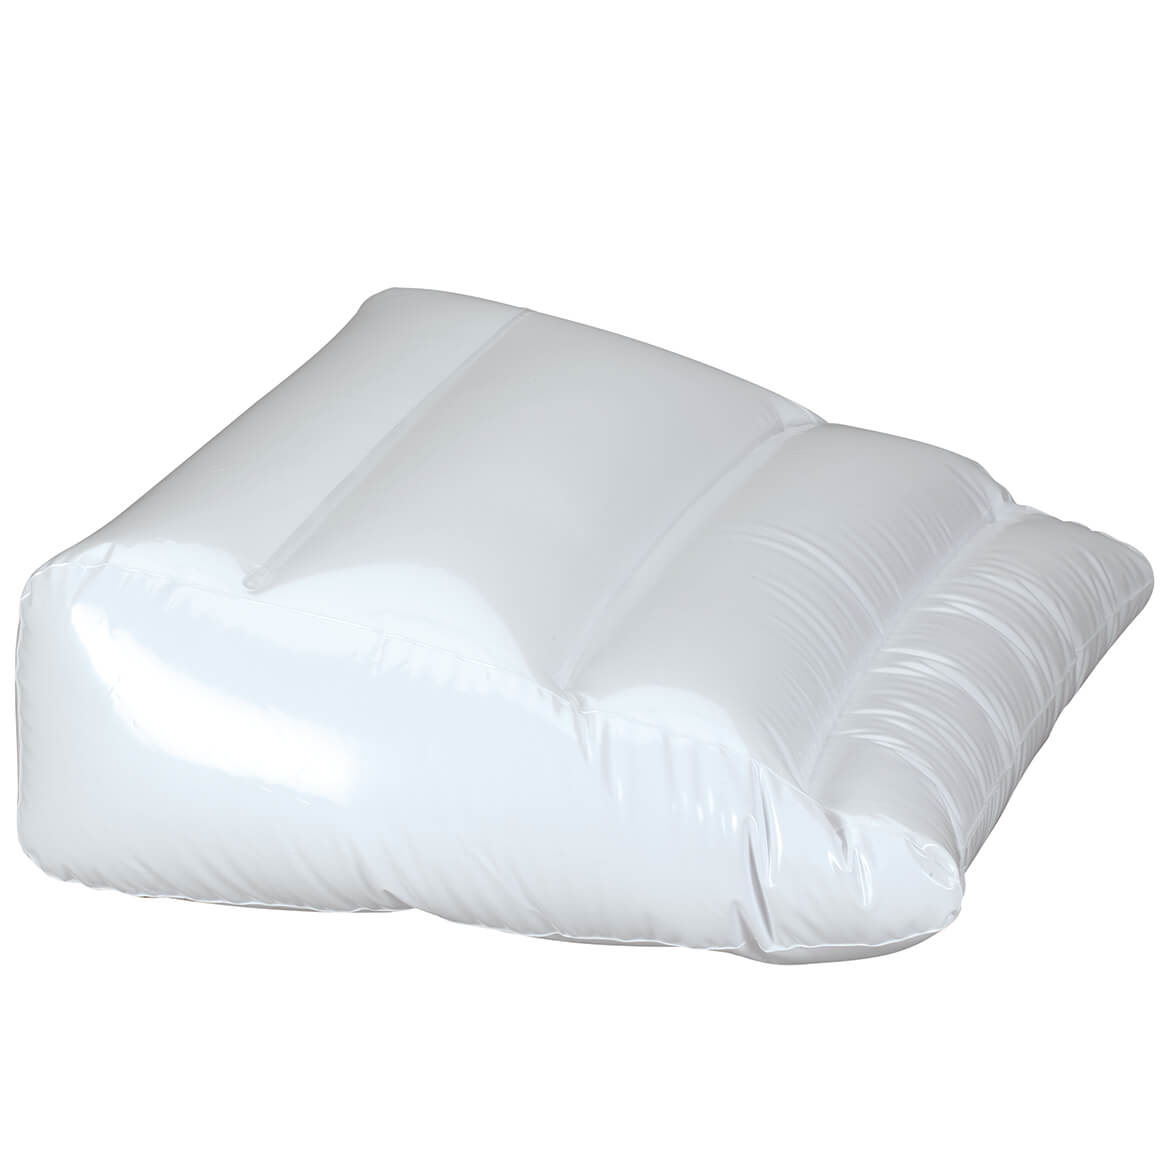 Inflatable Therapeutic Leg Pillow-371134